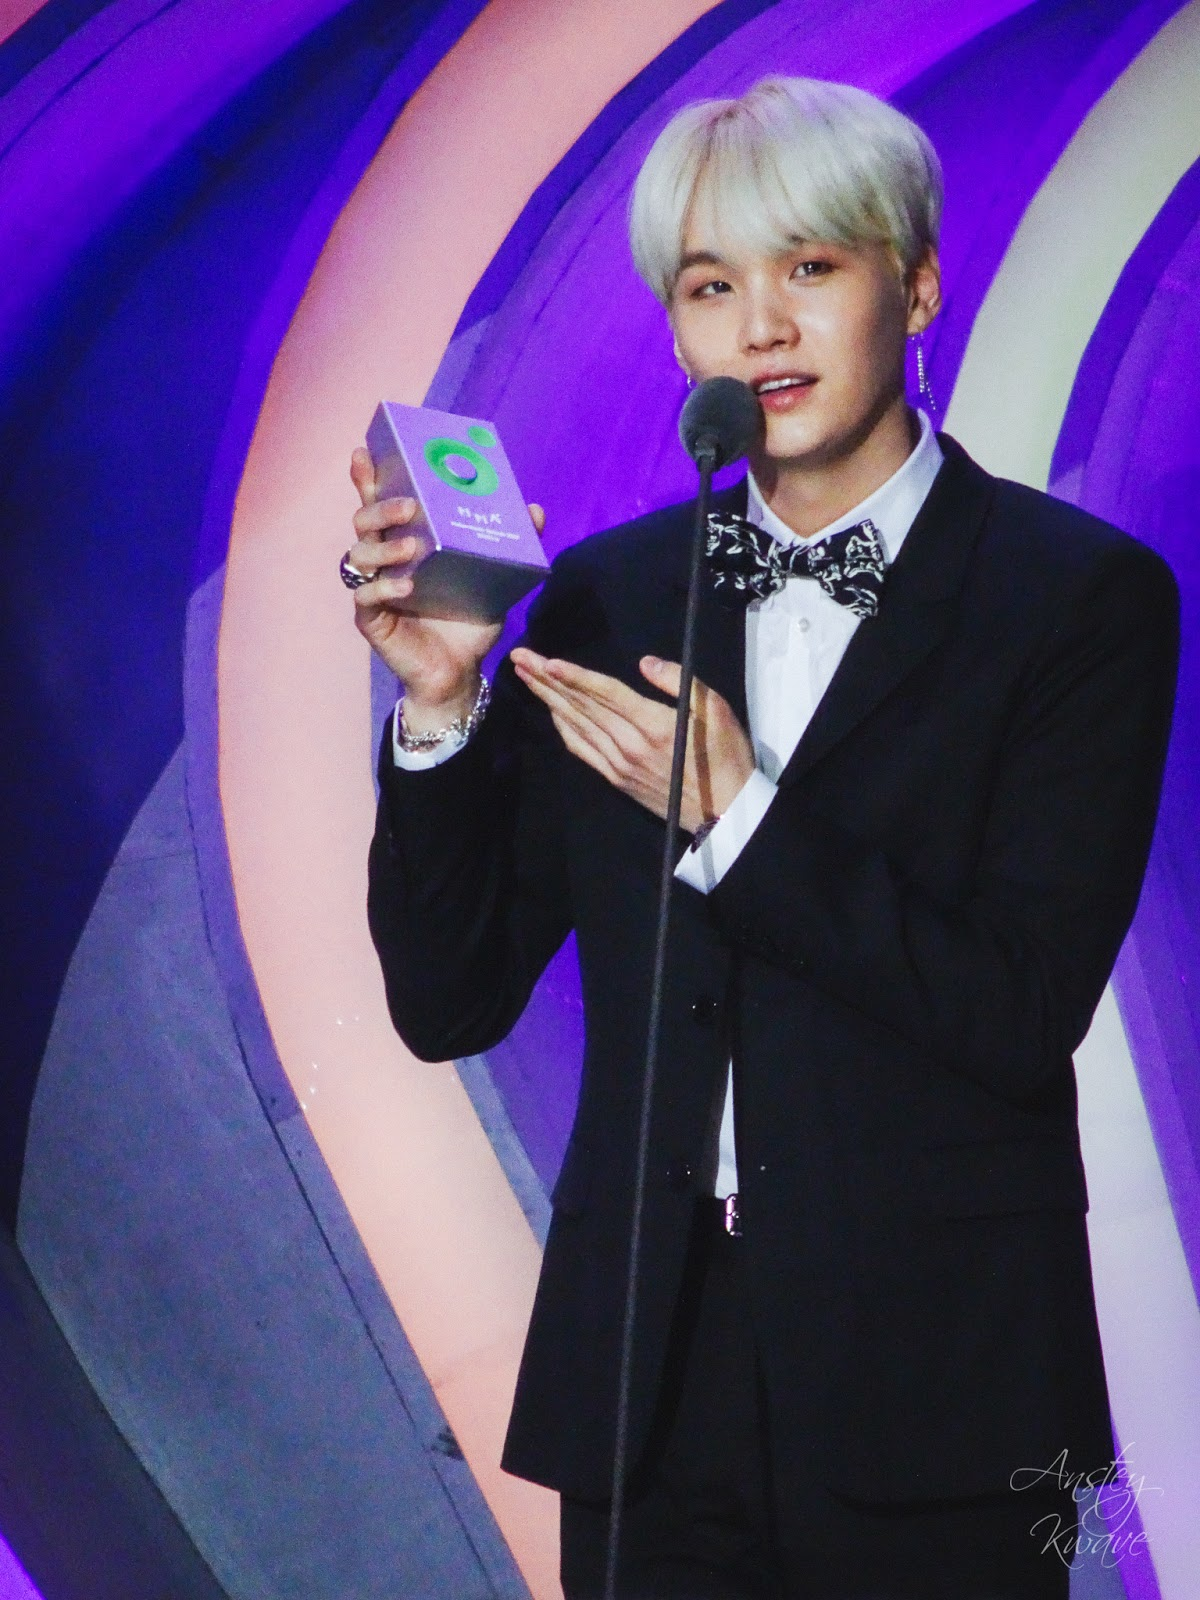 Suga, member of famous Korean k-pop boy band BTS receiving award on stage at Melon Music Awards (MMA) 2017 in Seoul, South Korea